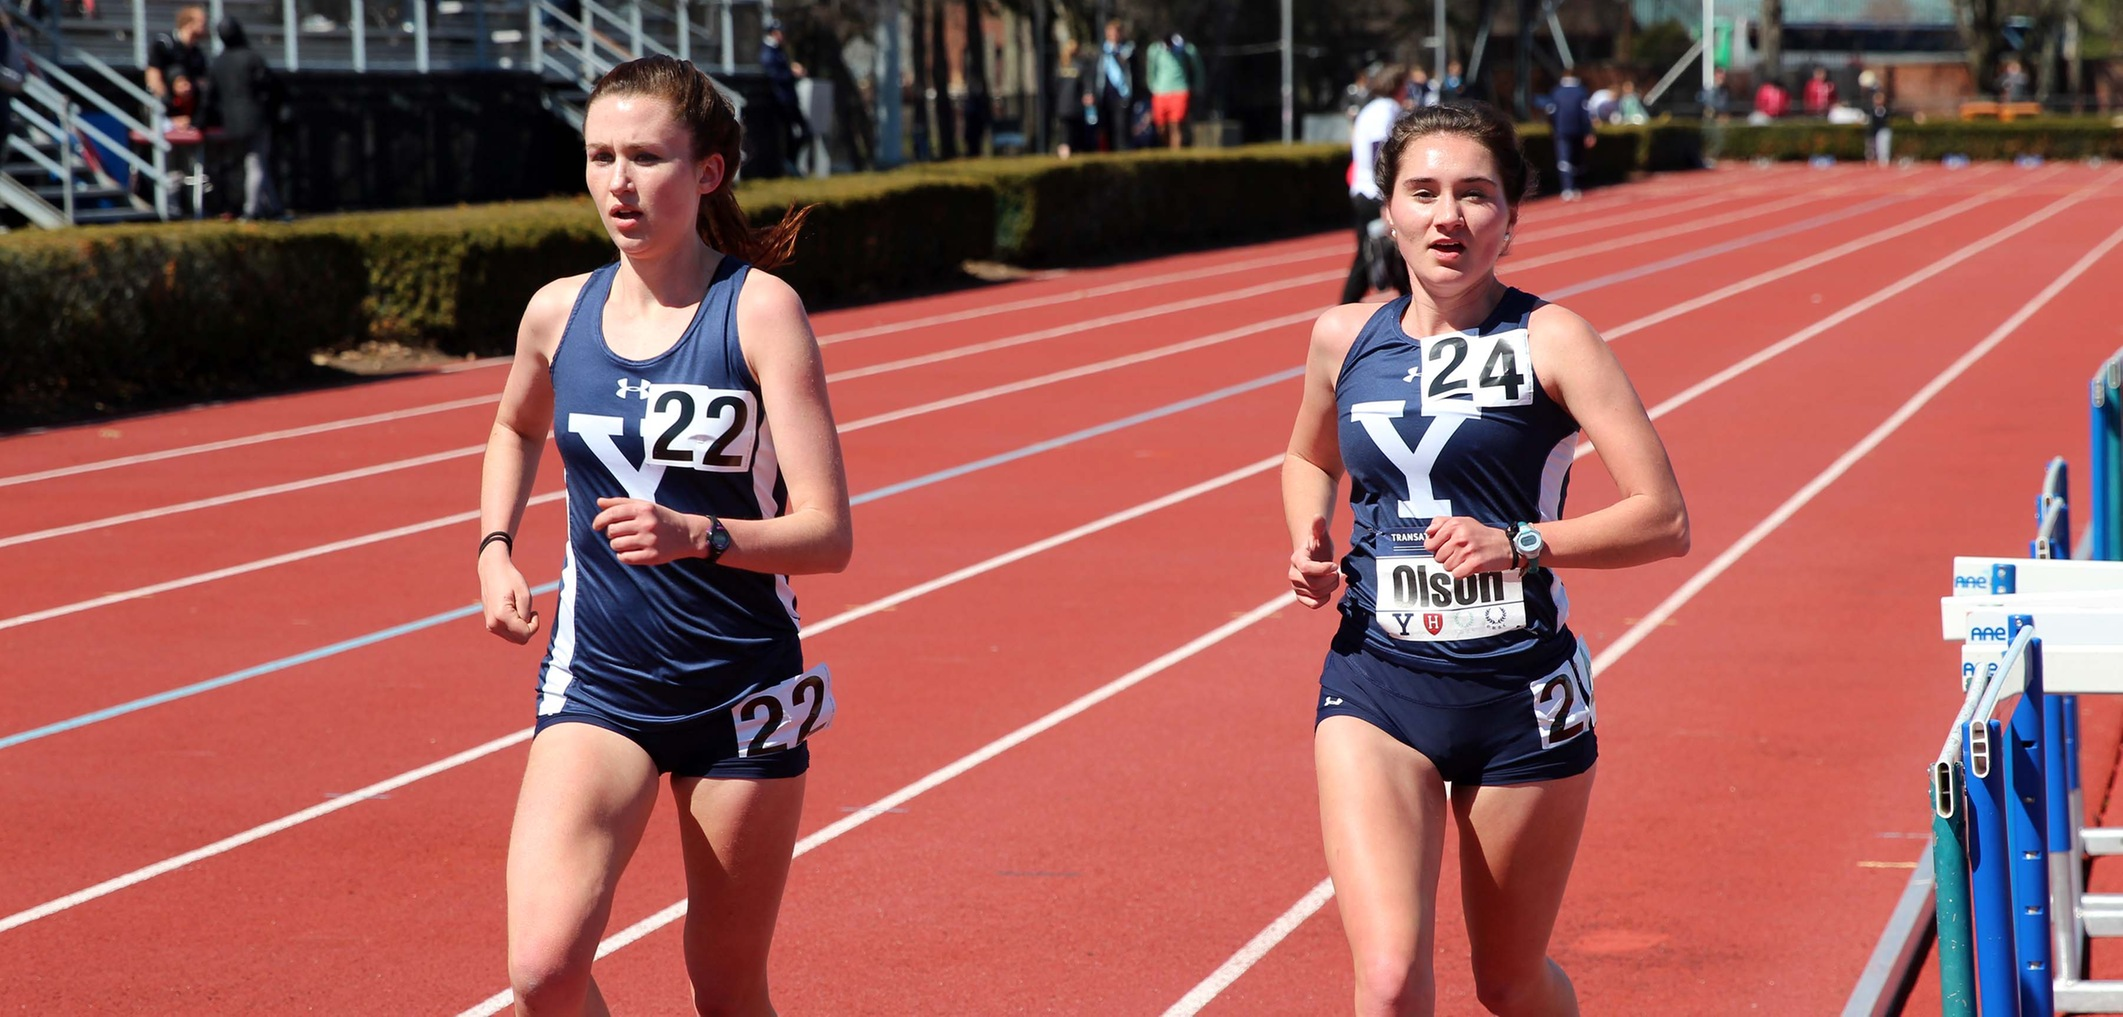 Emily Barnes (left) and Chandler Olson (right). (photo by Greg Sohanchyk, Yale Sports Publicity)